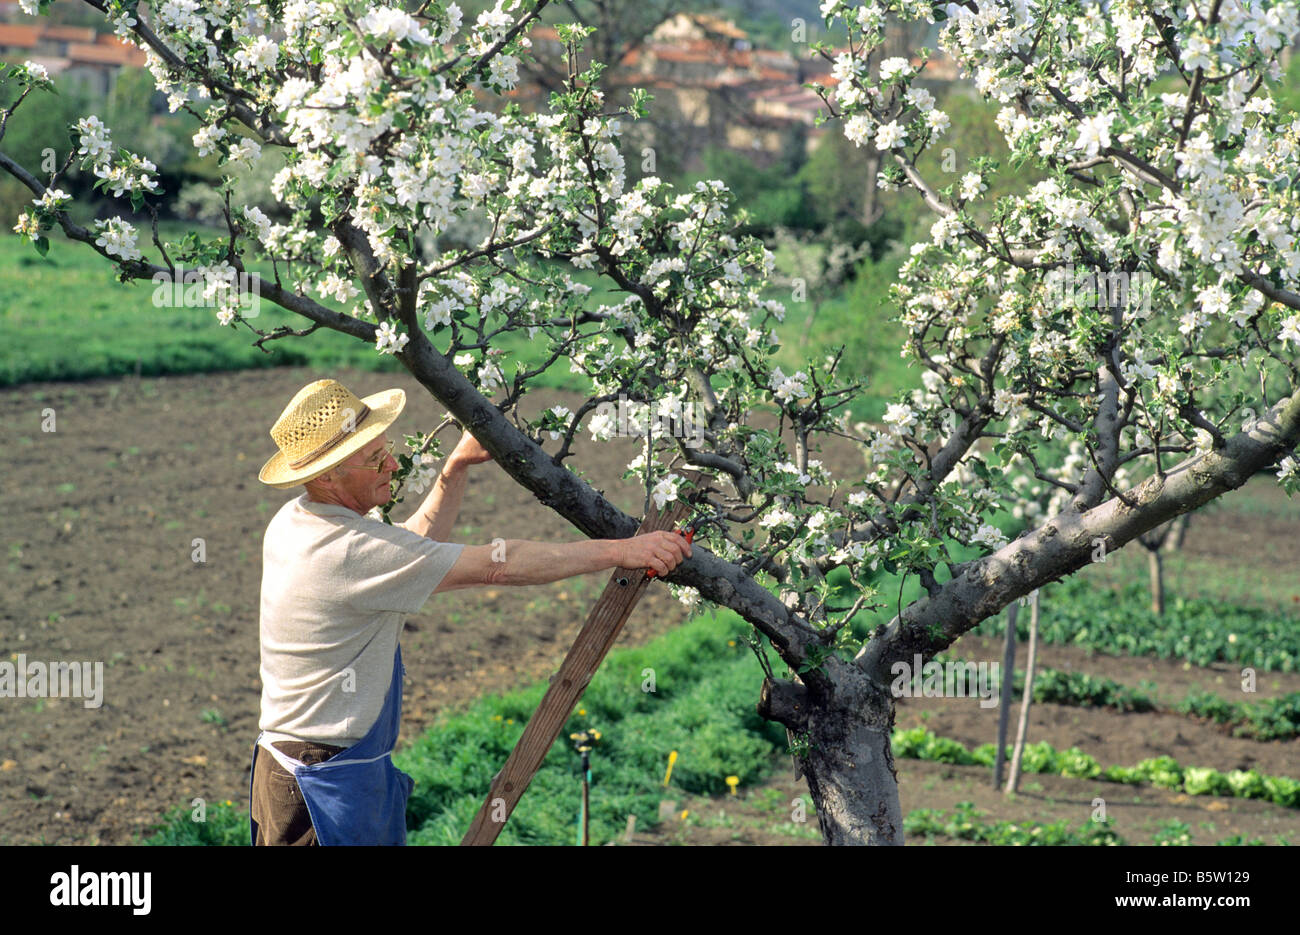 Man on a ladder pruning a fruit tree with secateurs - Stock Image